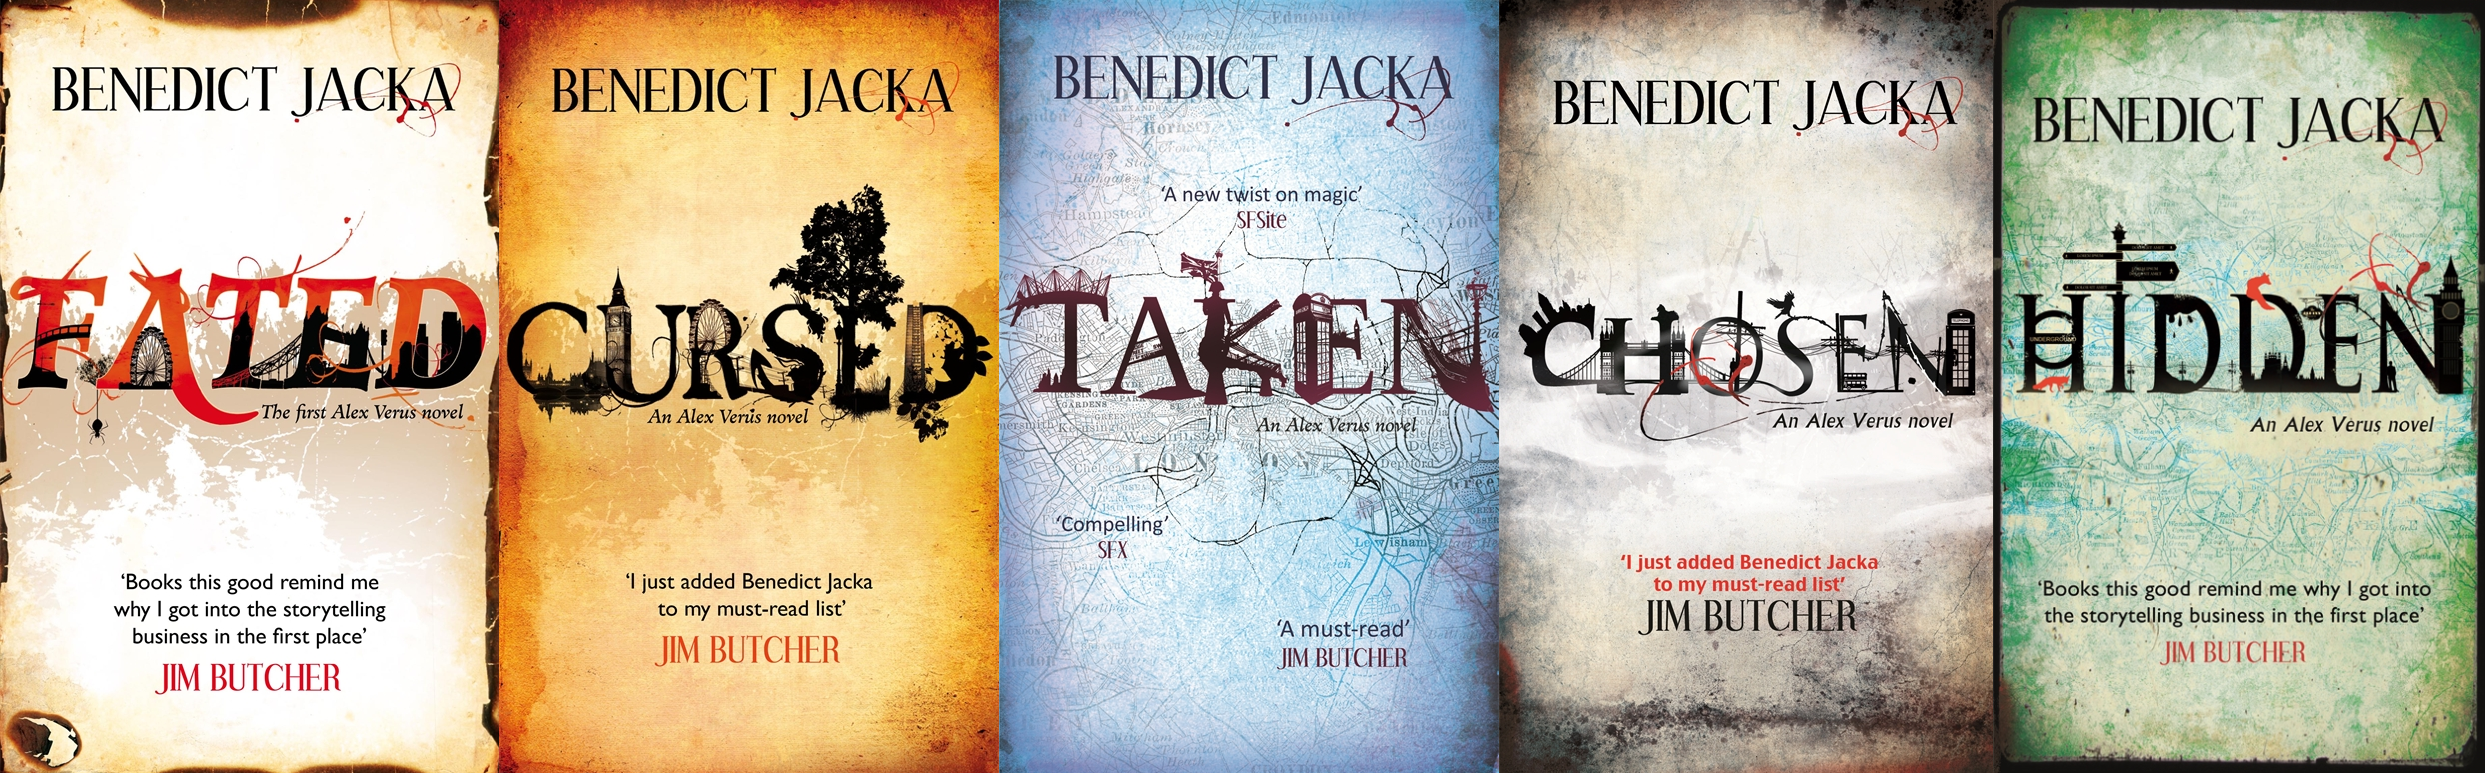 London-based urban fantasy at its best – the Alex Verus series by Benedict Jacka